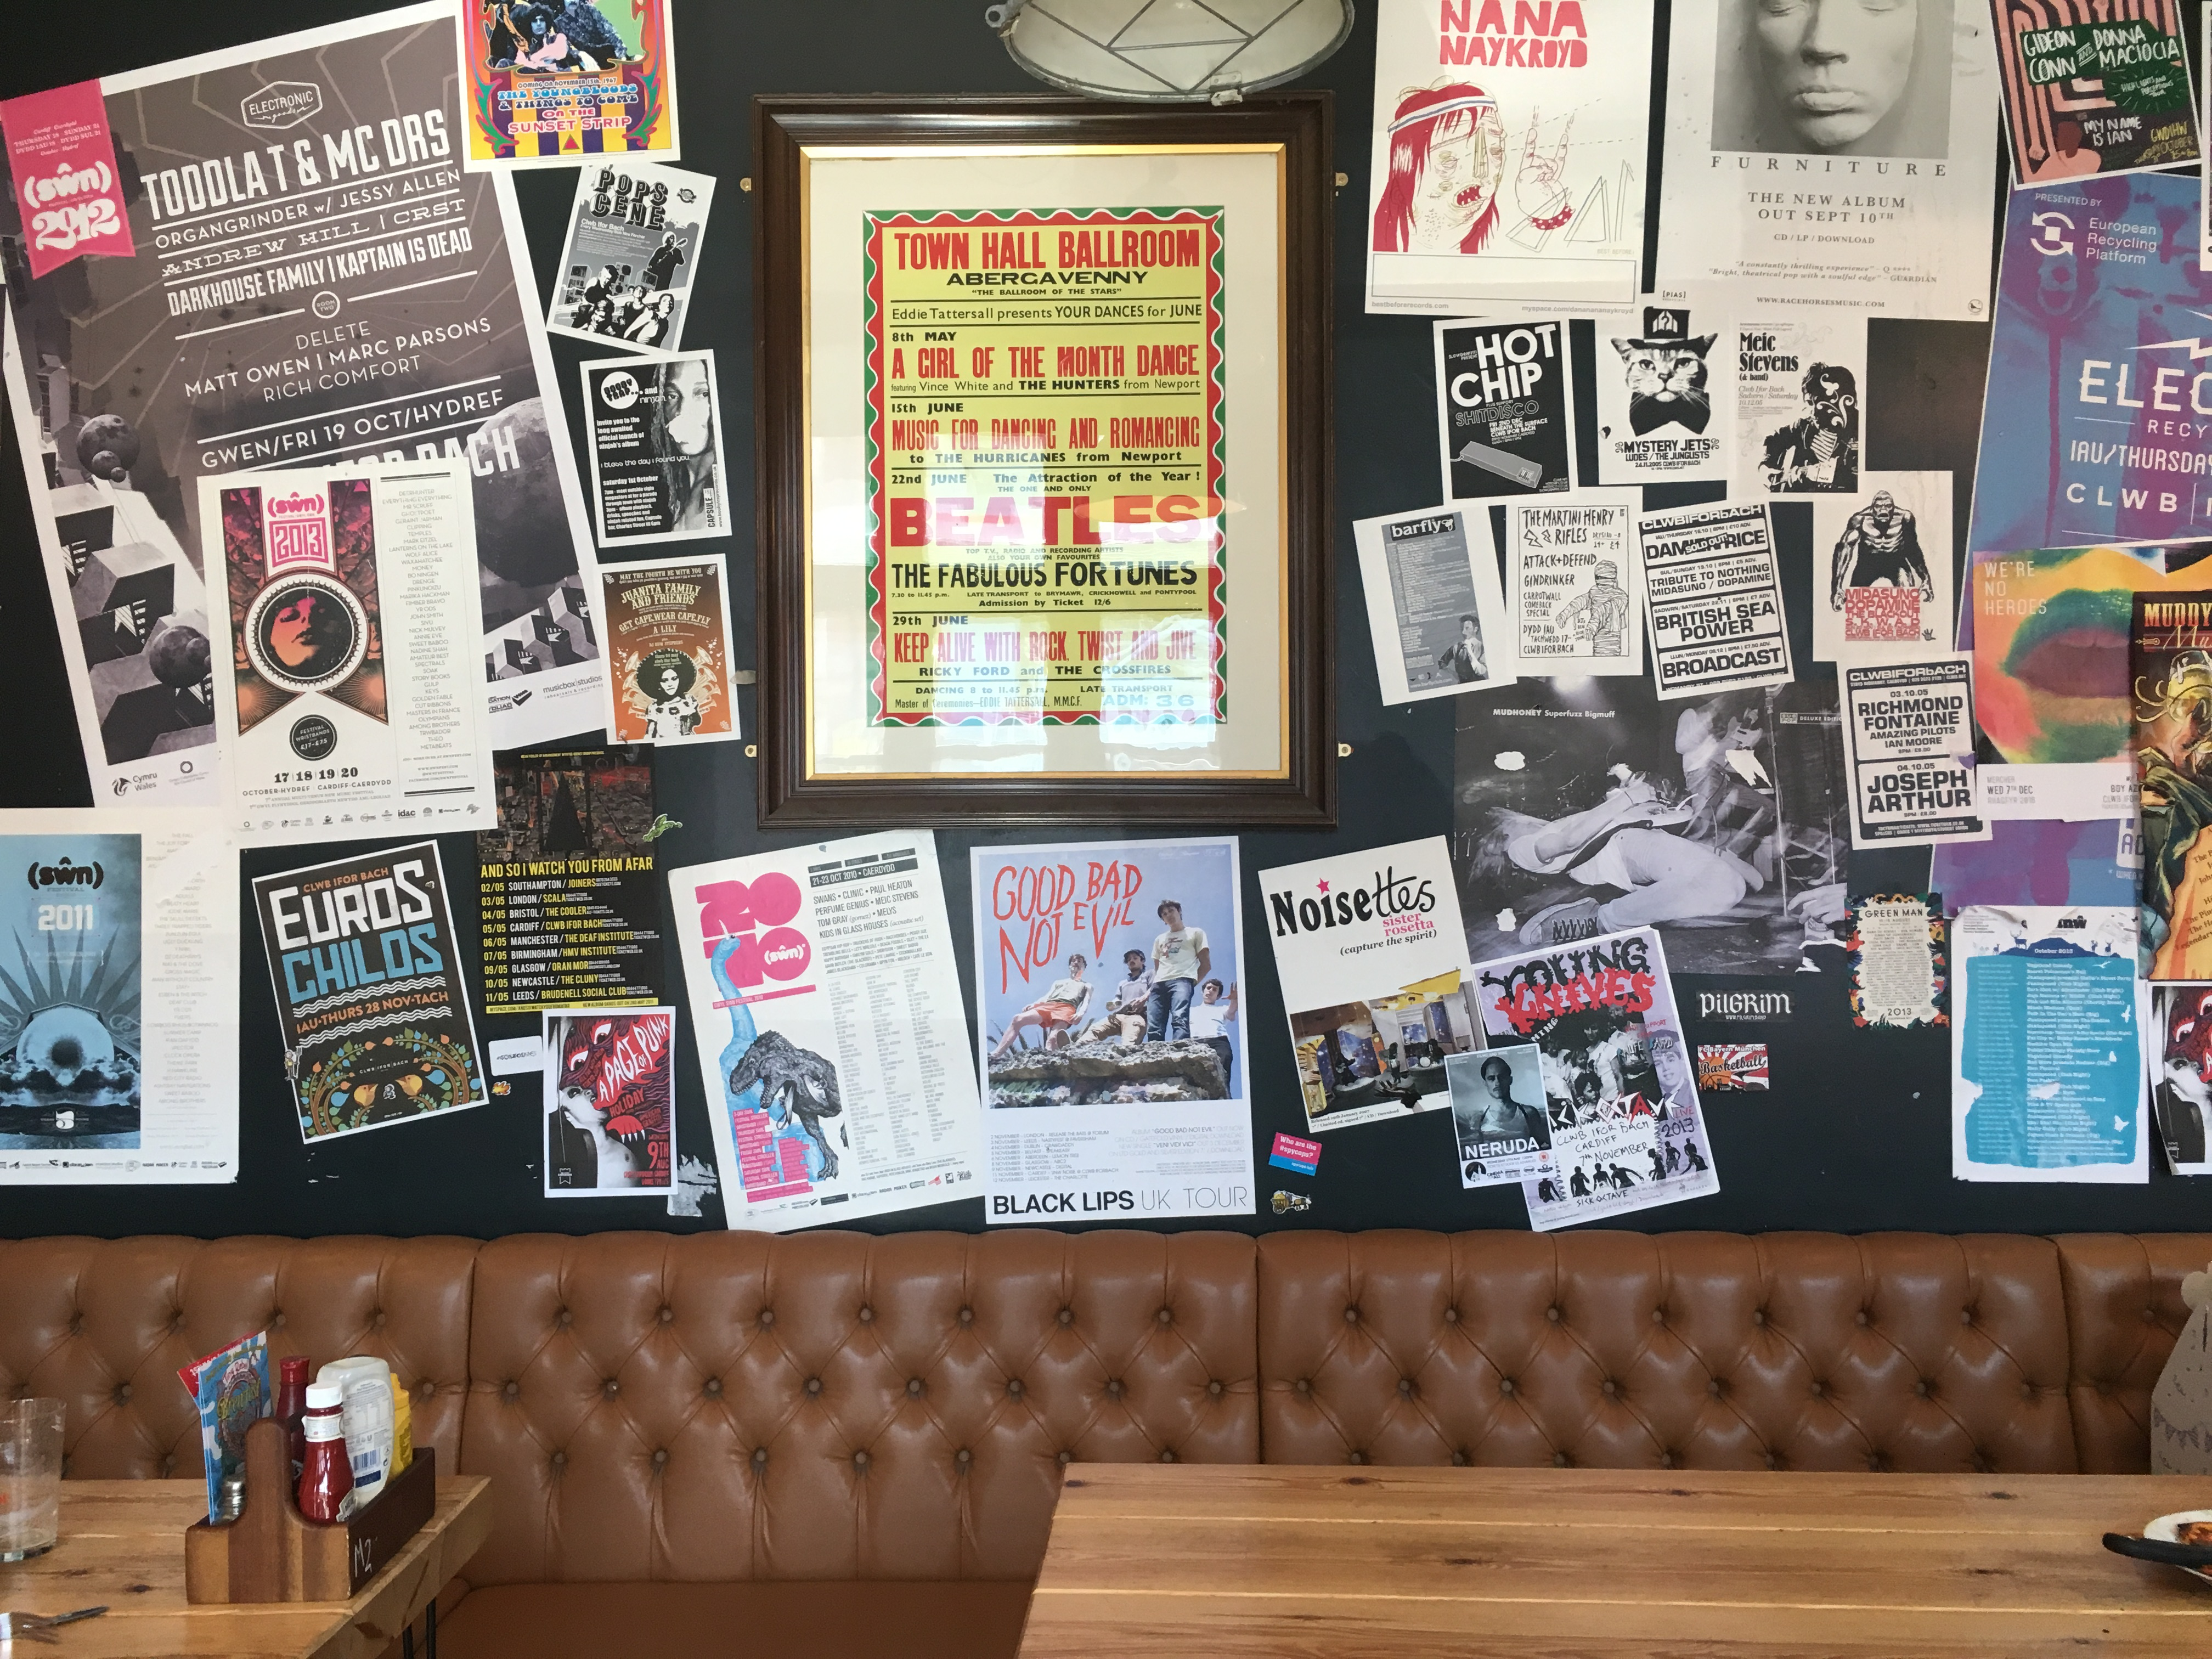 Tiny Rebel Cardiff posters